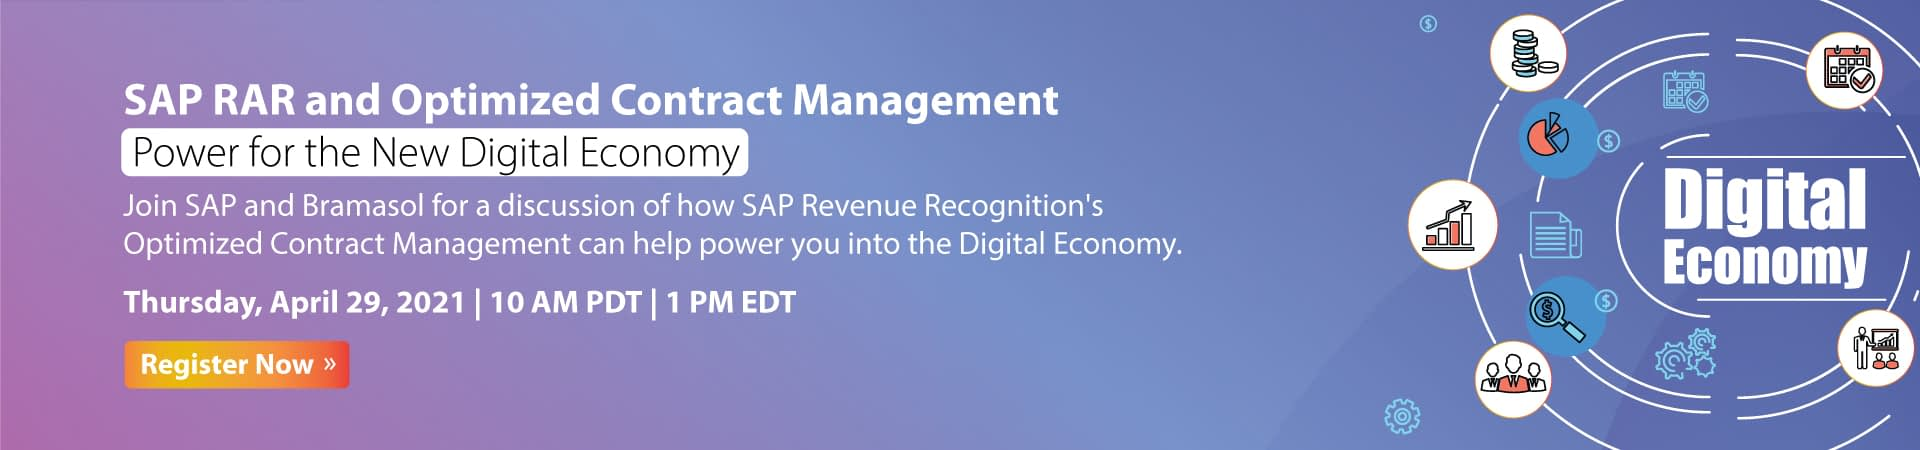 SAP RAR and Optimized Contract Management - Power for the New Digital Economy banner